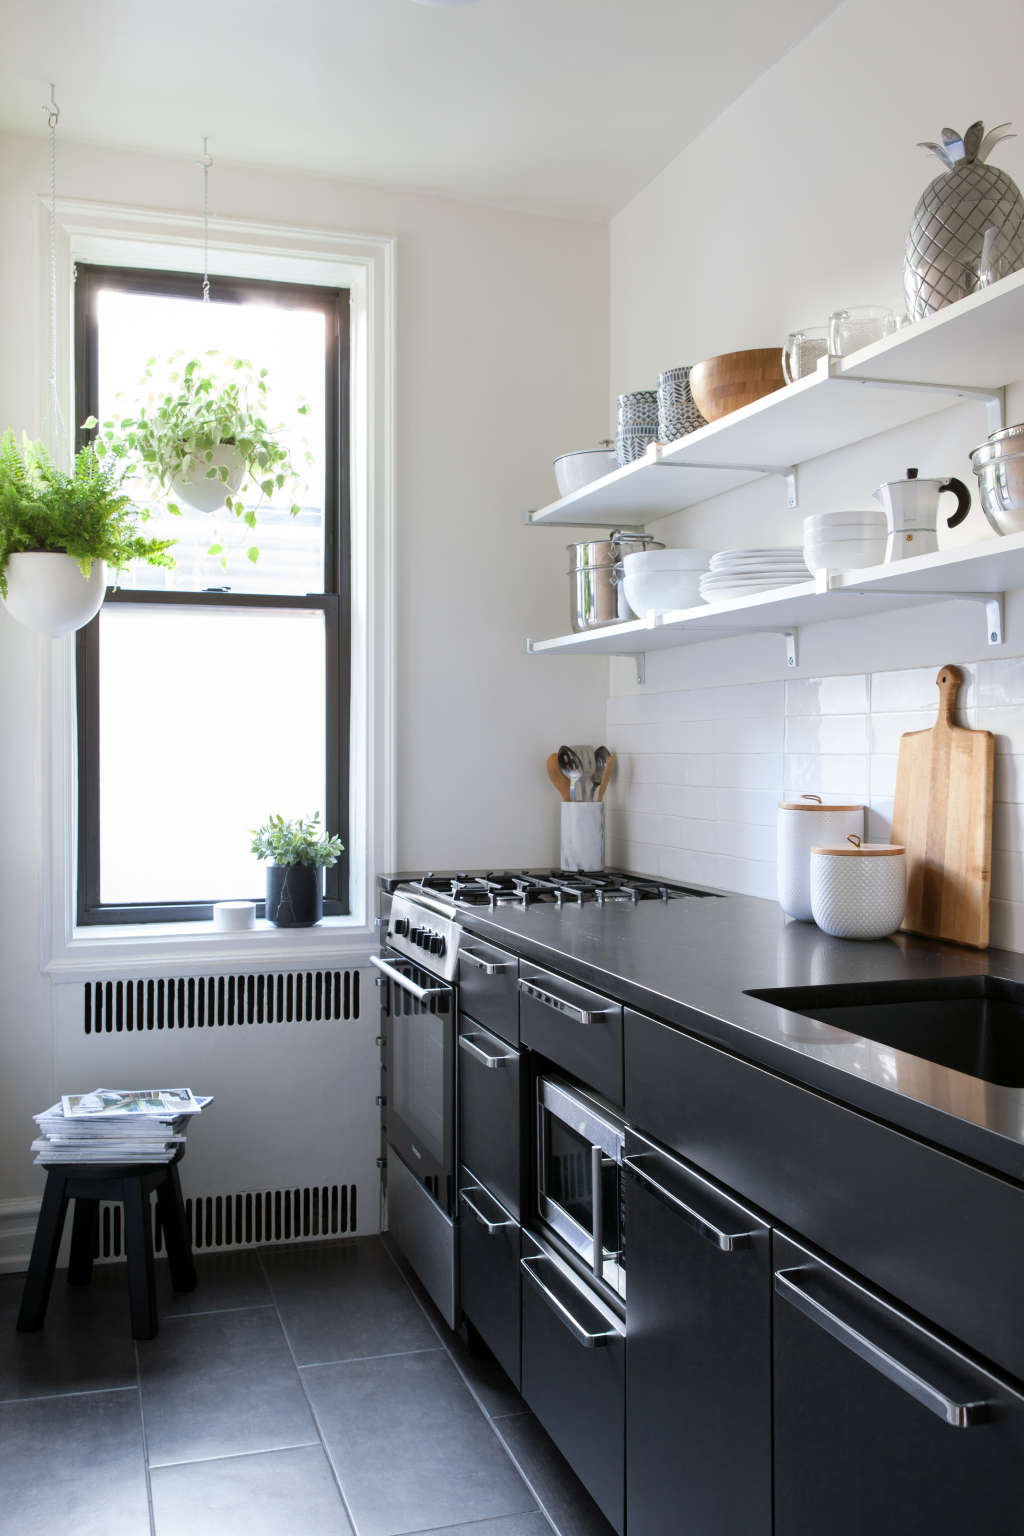 6 Things That Make Your Kitchen Look Messier than It Is